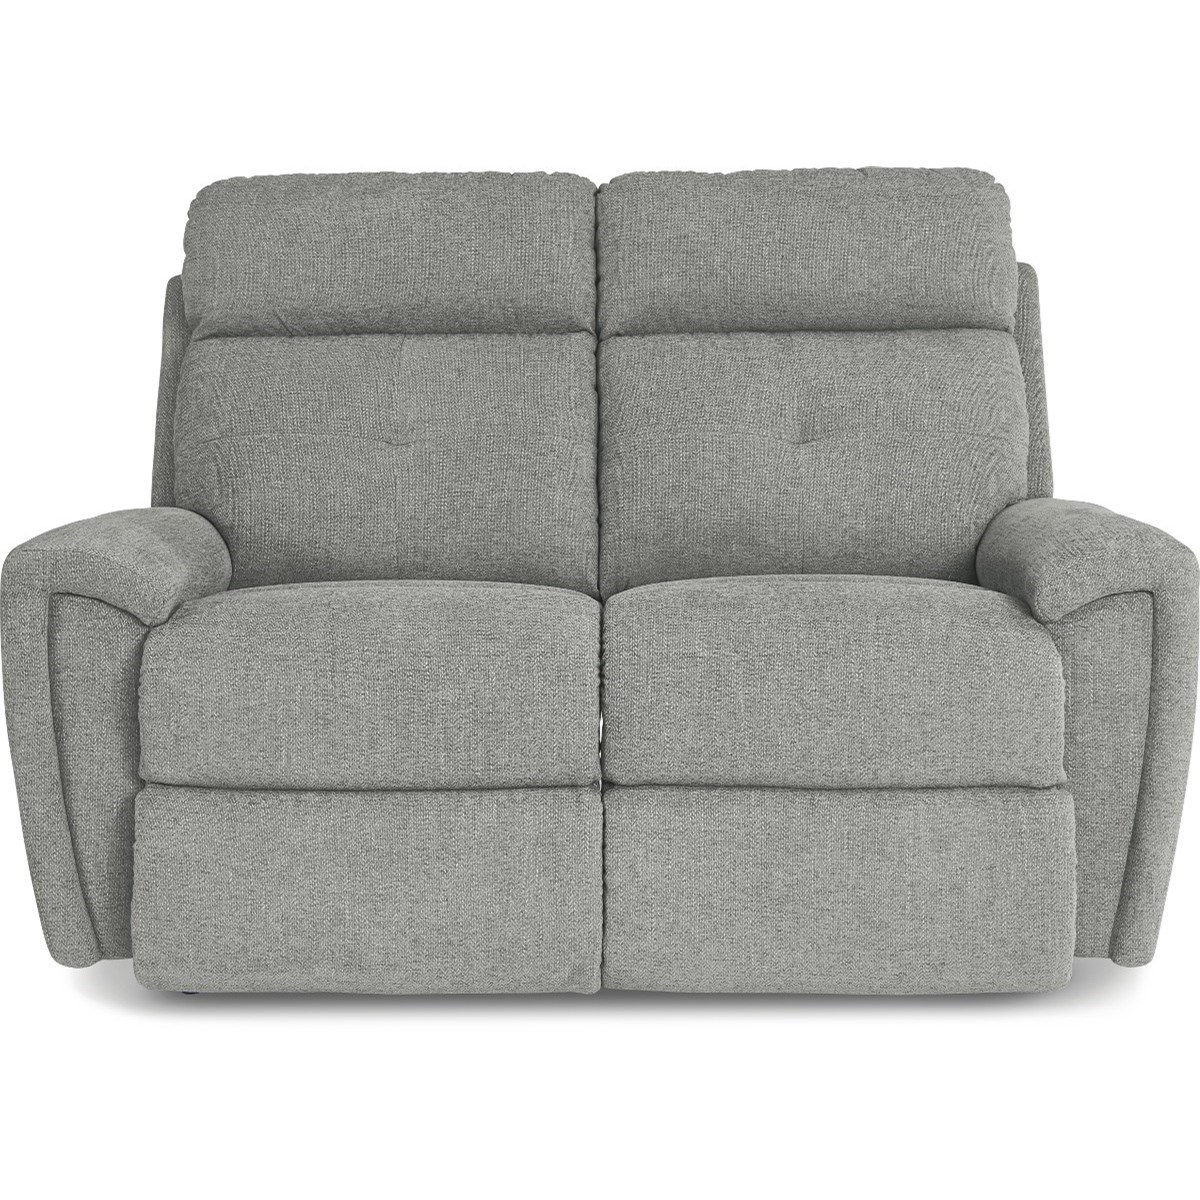 Pleasing La Z Boy Douglas Contemporary Reclining Loveseat Lindys Creativecarmelina Interior Chair Design Creativecarmelinacom